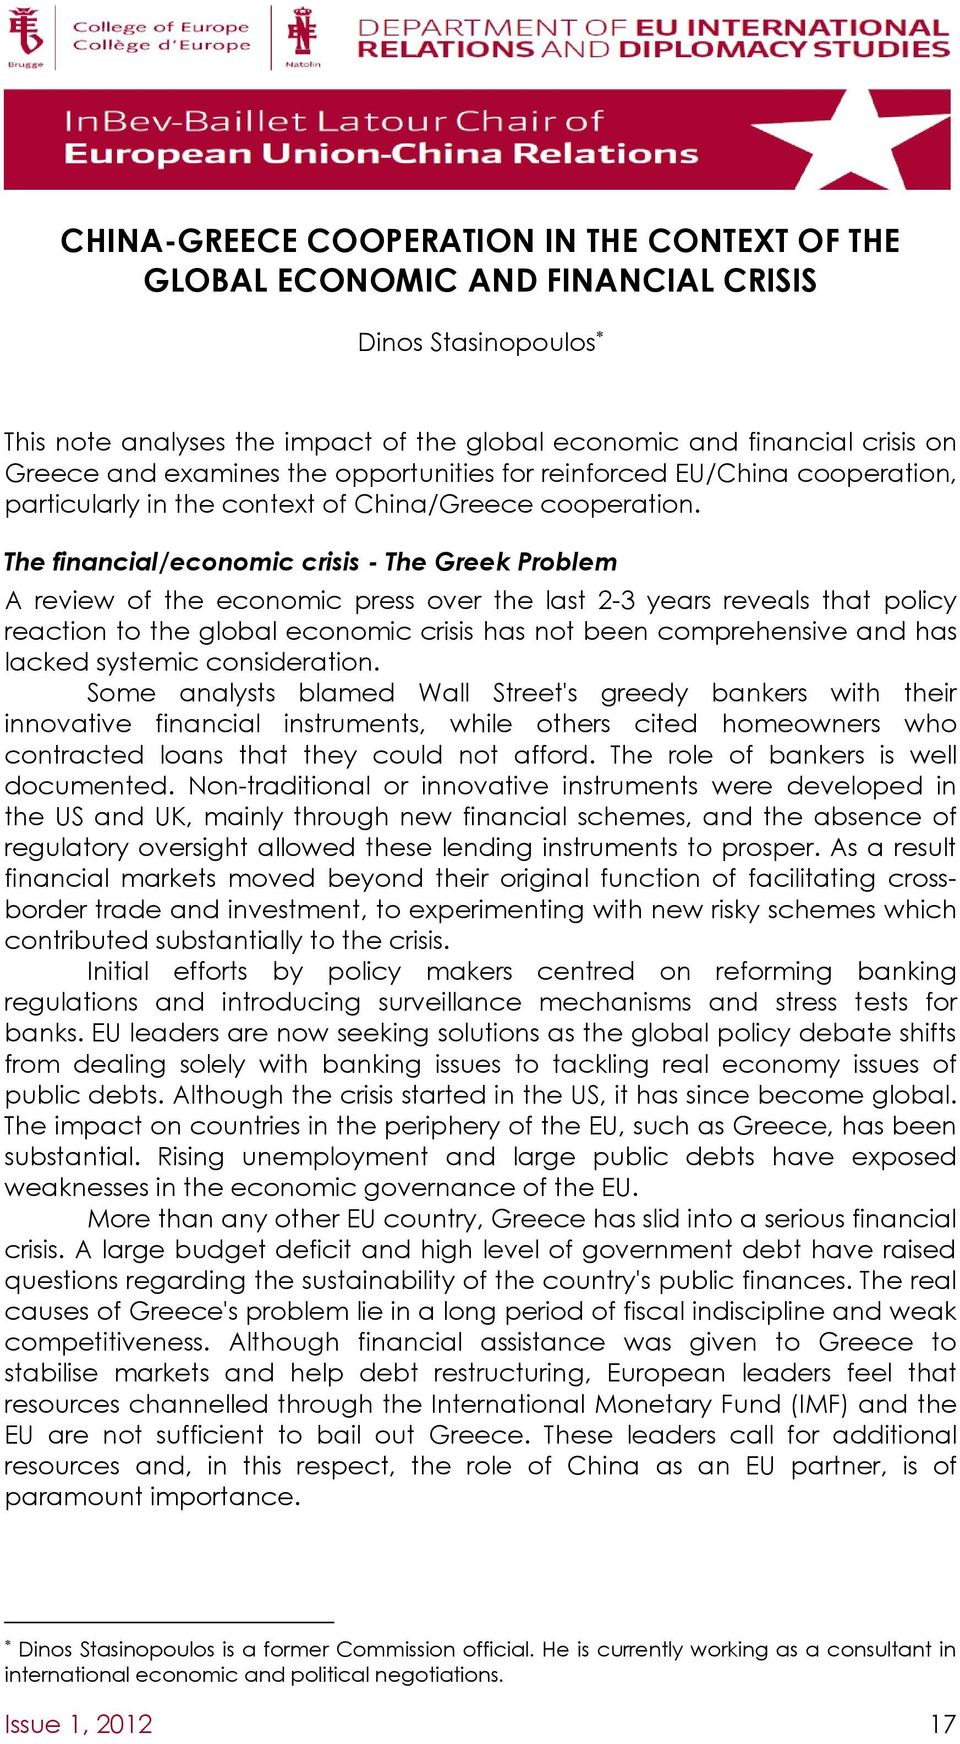 The financial/economic crisis - The Greek Problem A review of the economic press over the last 2-3 years reveals that policy reaction to the global economic crisis has not been comprehensive and has